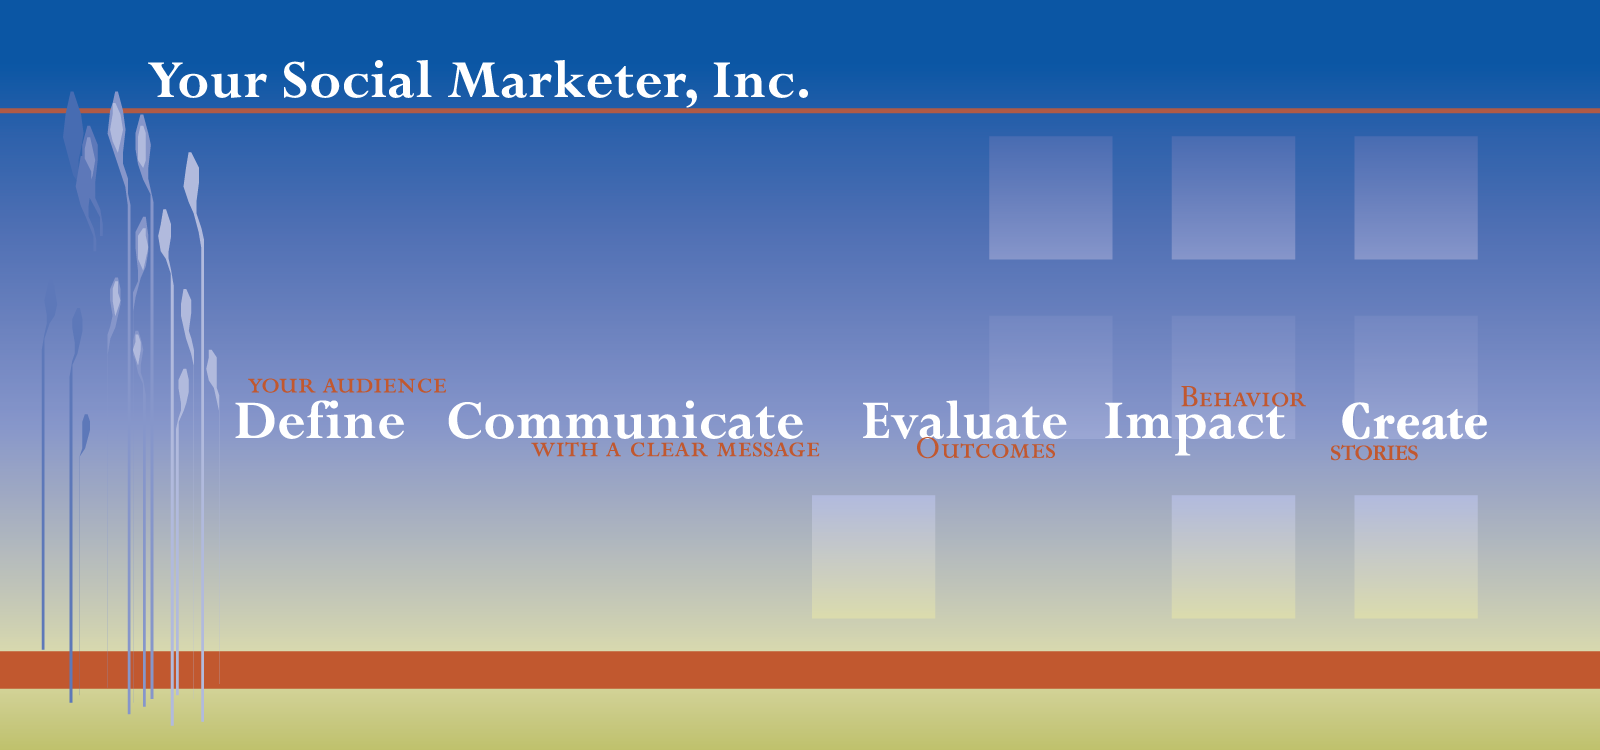 Your Social Marketer